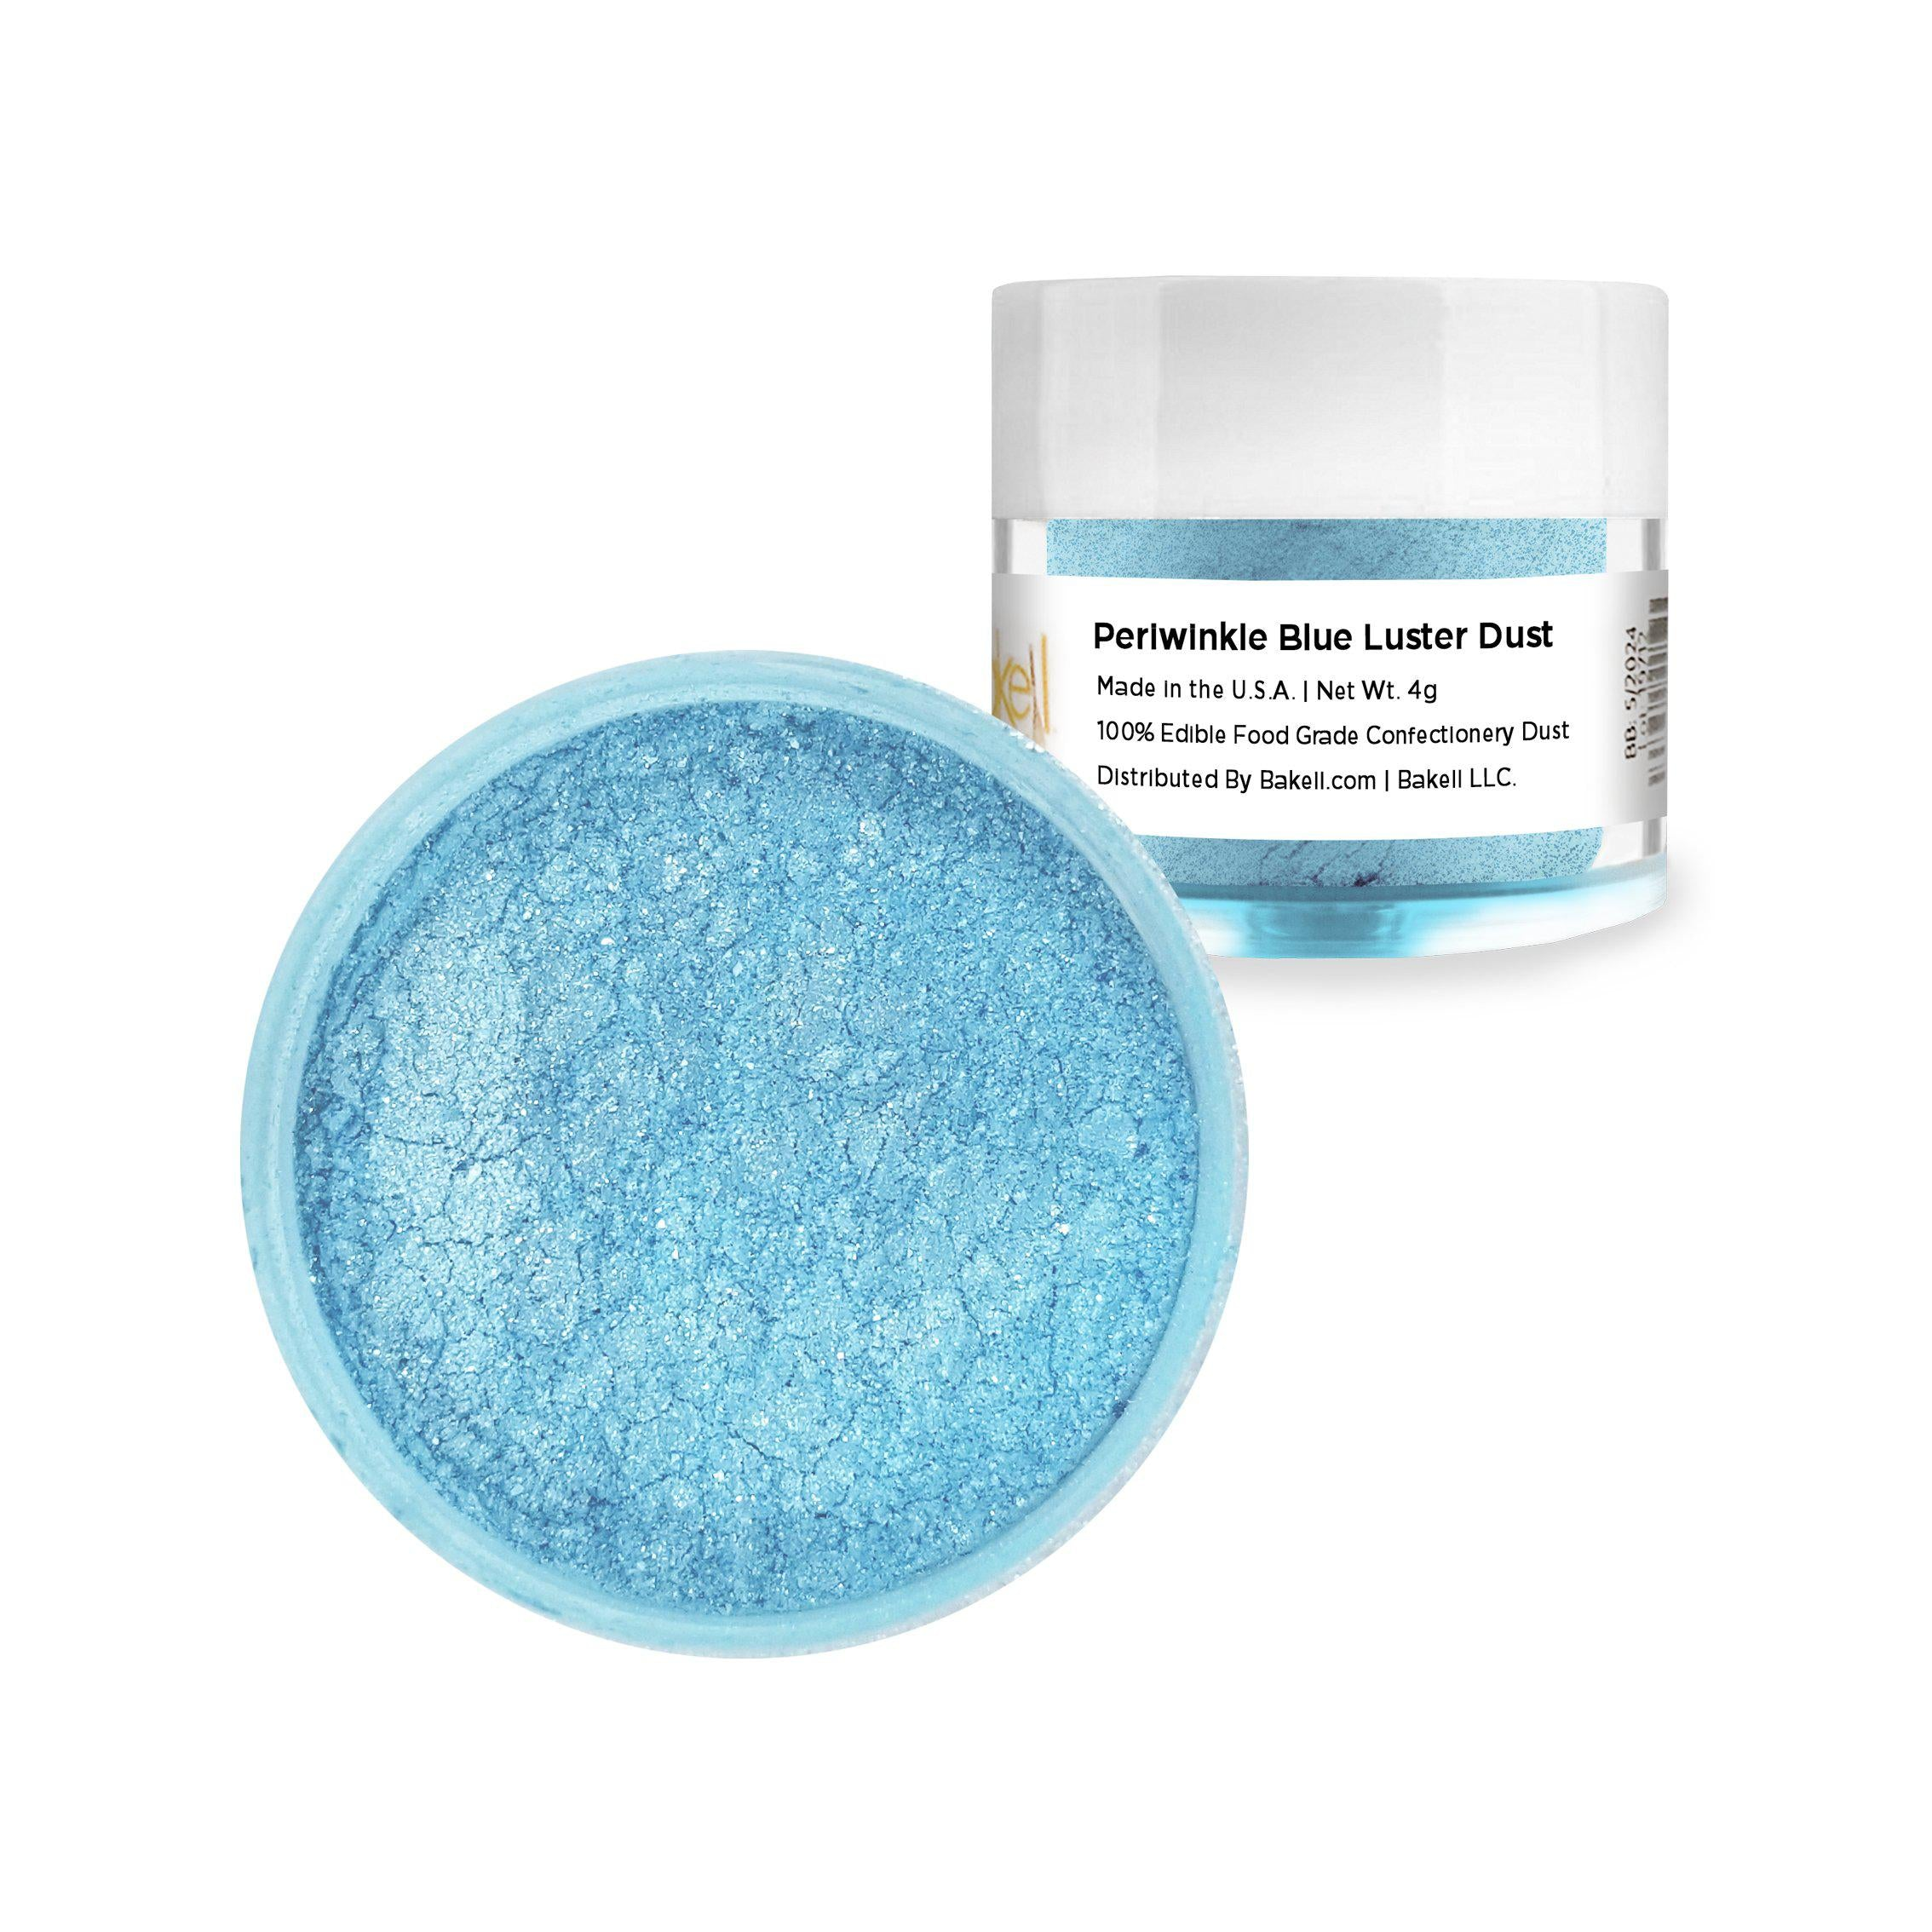 Periwinkle Blue Edible Luster Dust & Edible Paint | FDA Approved & Kosher Certified | Bakell® #1 site for FDA Compliant edible glitter & edible dust | Bakell.com